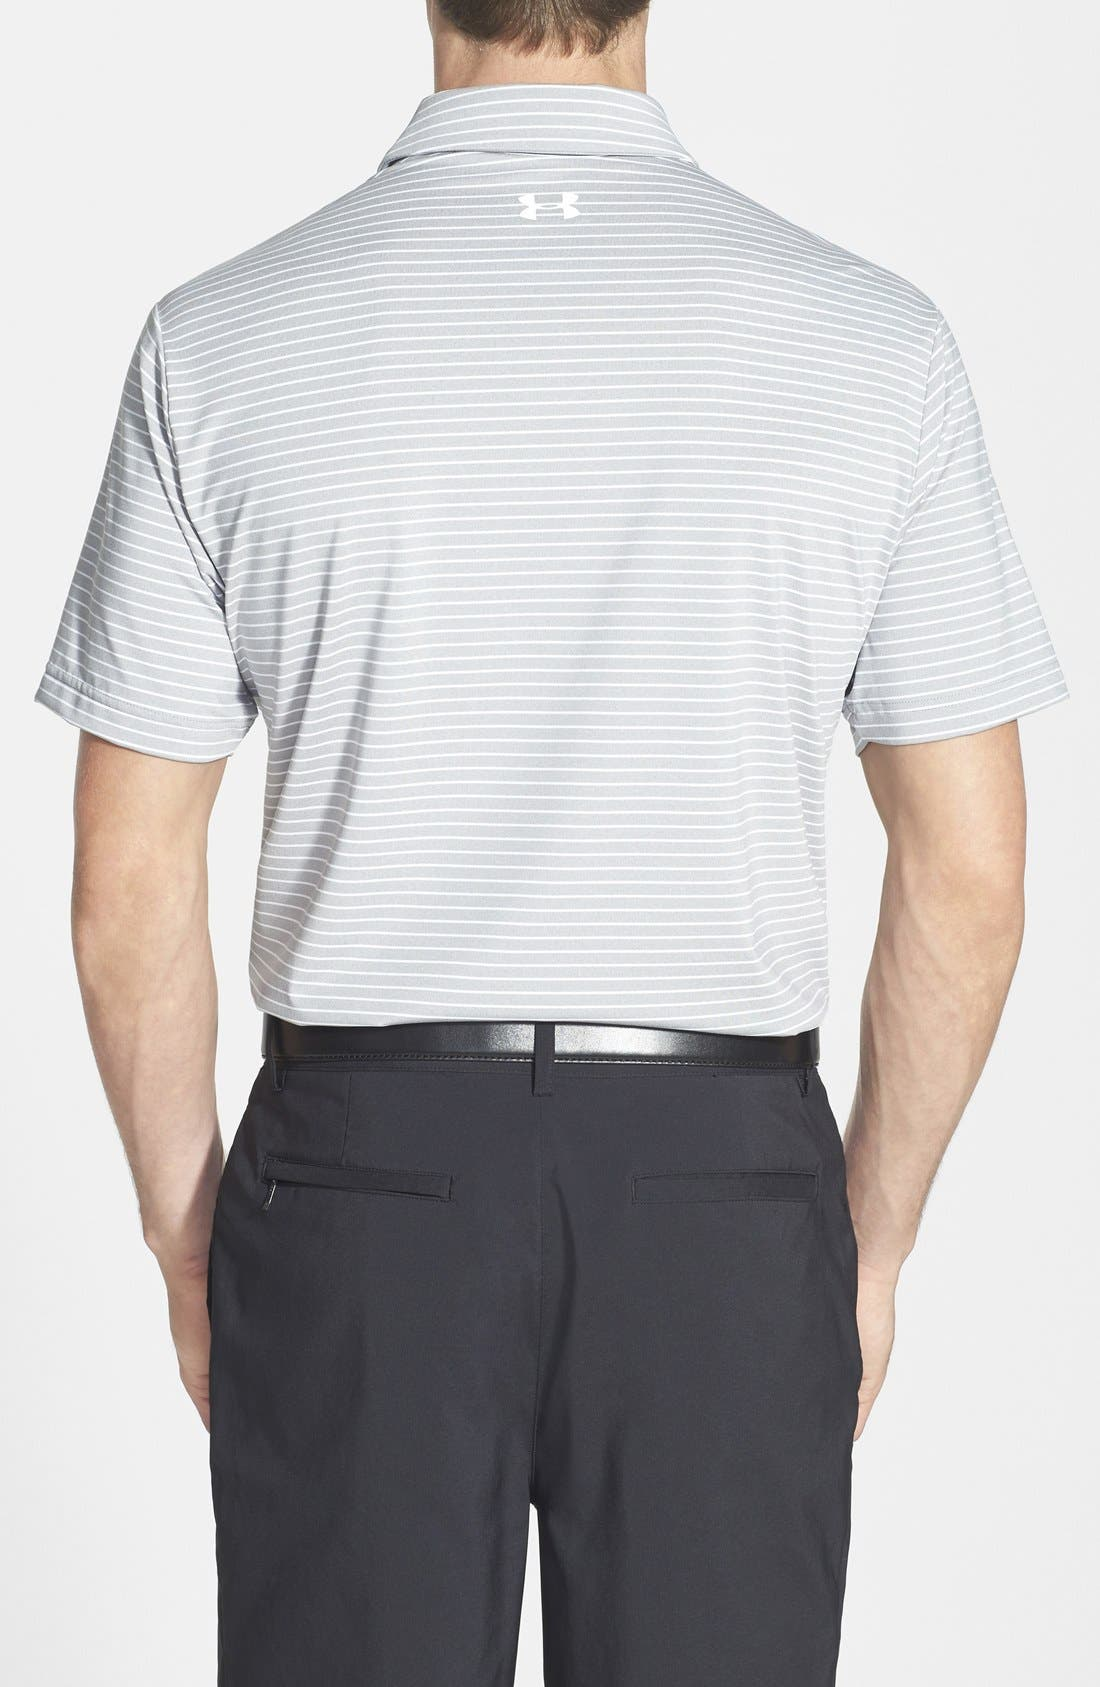 'Playoff' Loose Fit Short Sleeve Polo,                             Alternate thumbnail 8, color,                             TRUE GREY HEATHER/ WHT STRIPE